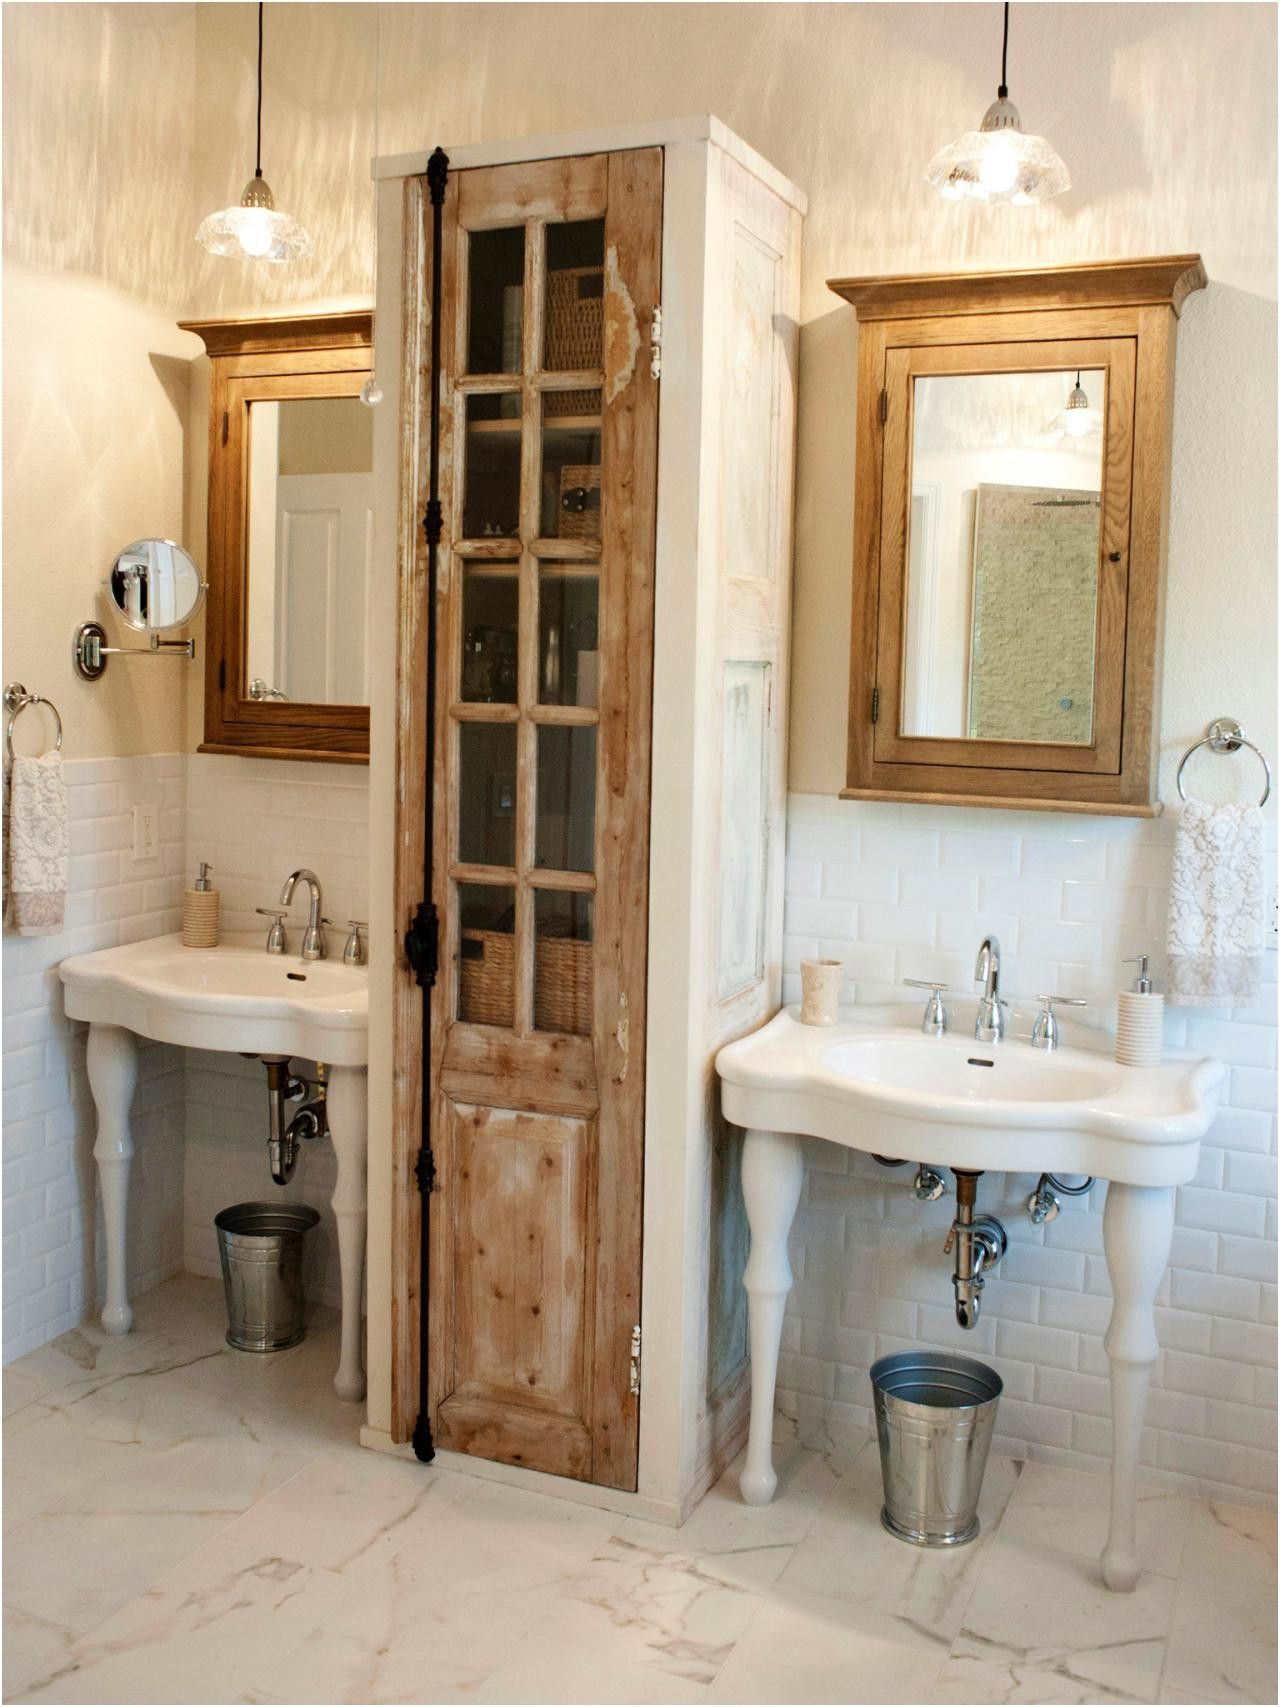 Tall Bathroom Cabinets From Vintage Bathroom Cabinets For Storage with measurements 1280 X 1707